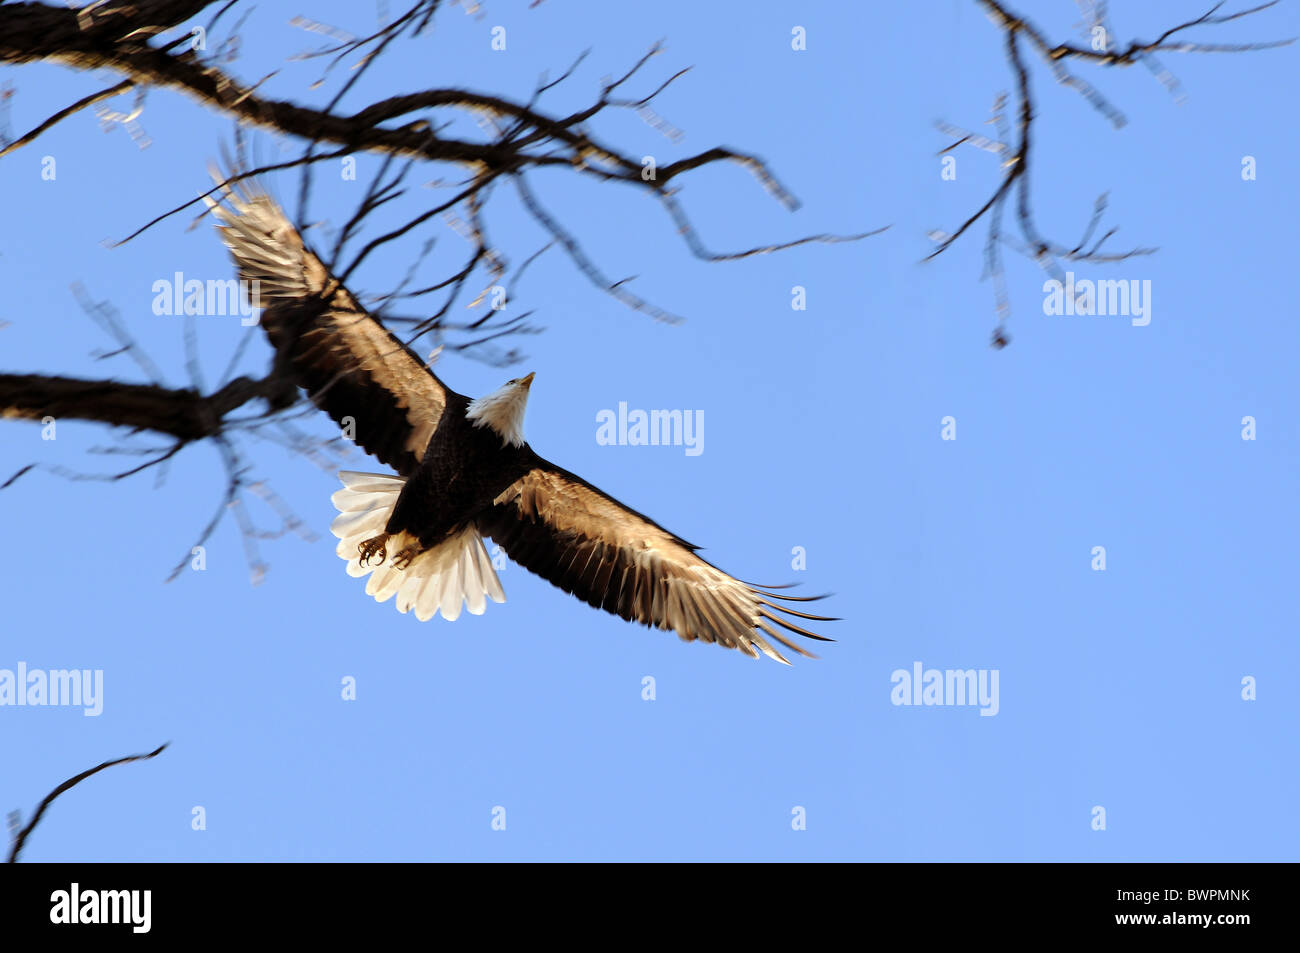 Bald eagle in flight over blue sky - Motion blur on wings - Stock Image